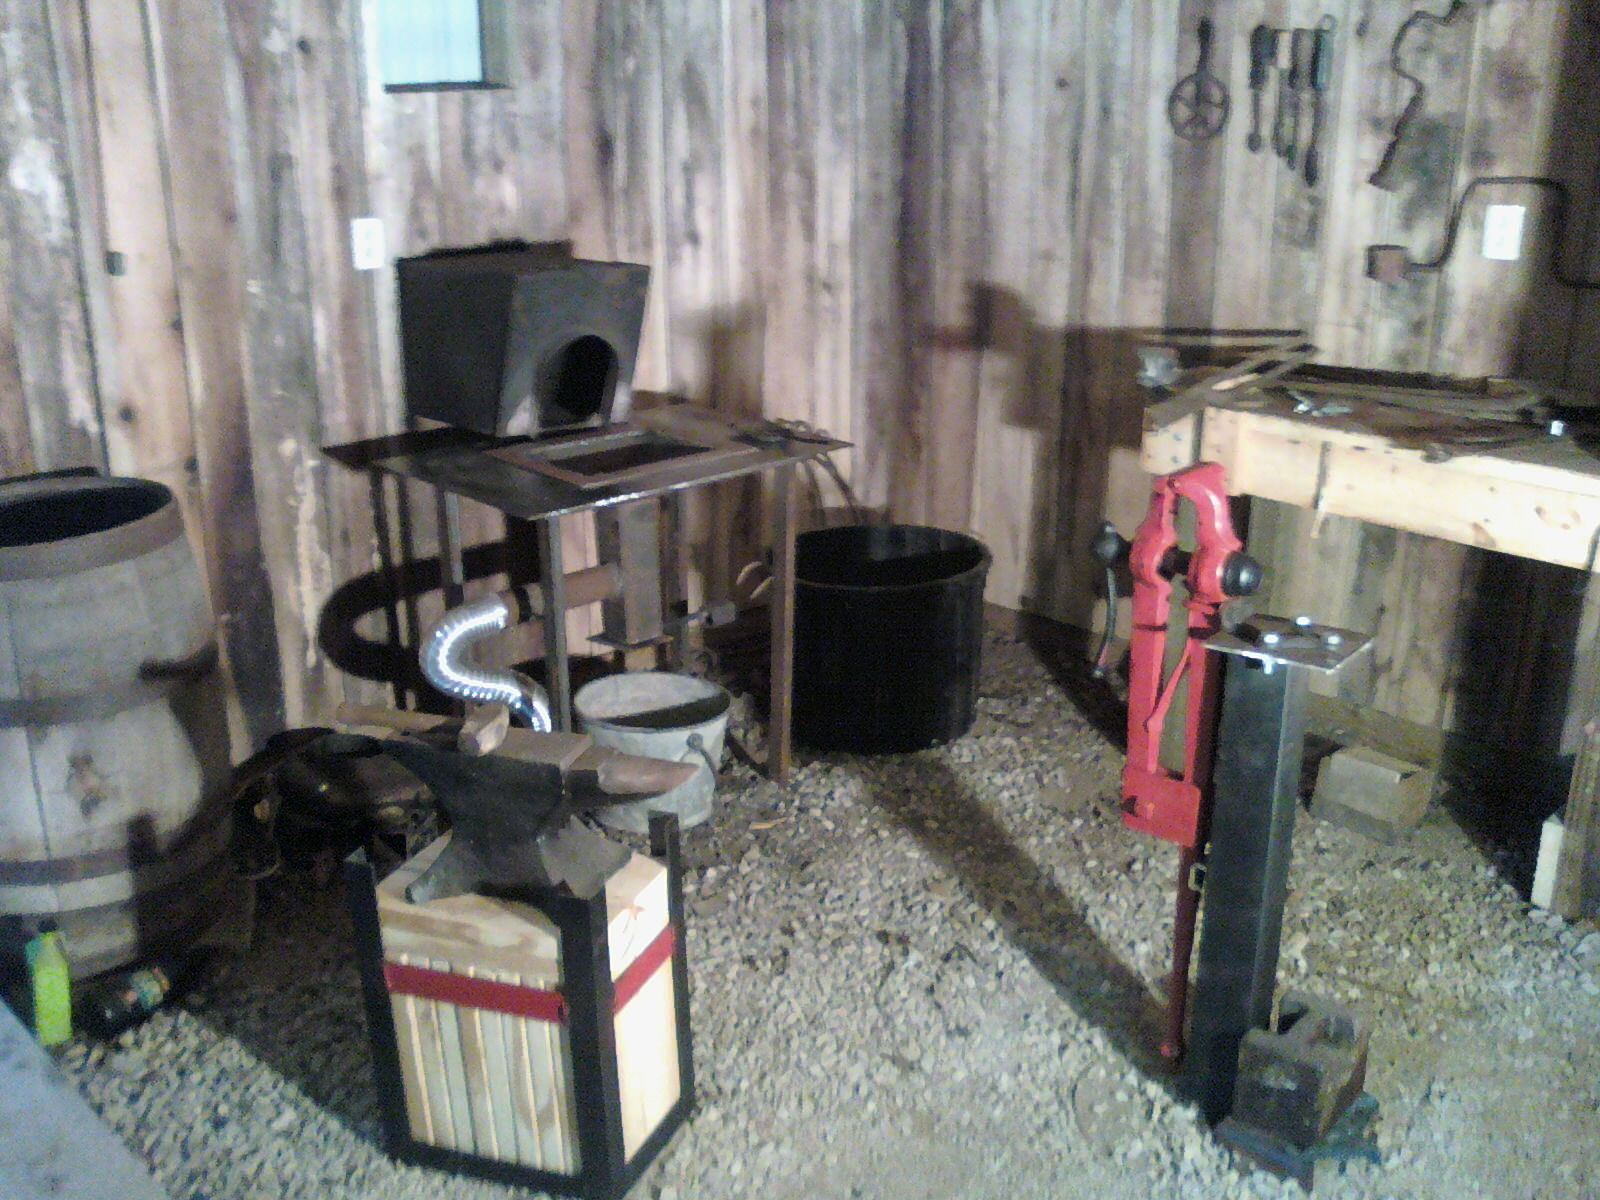 My Life On The Farm New Blacksmith Shop Setup And Table